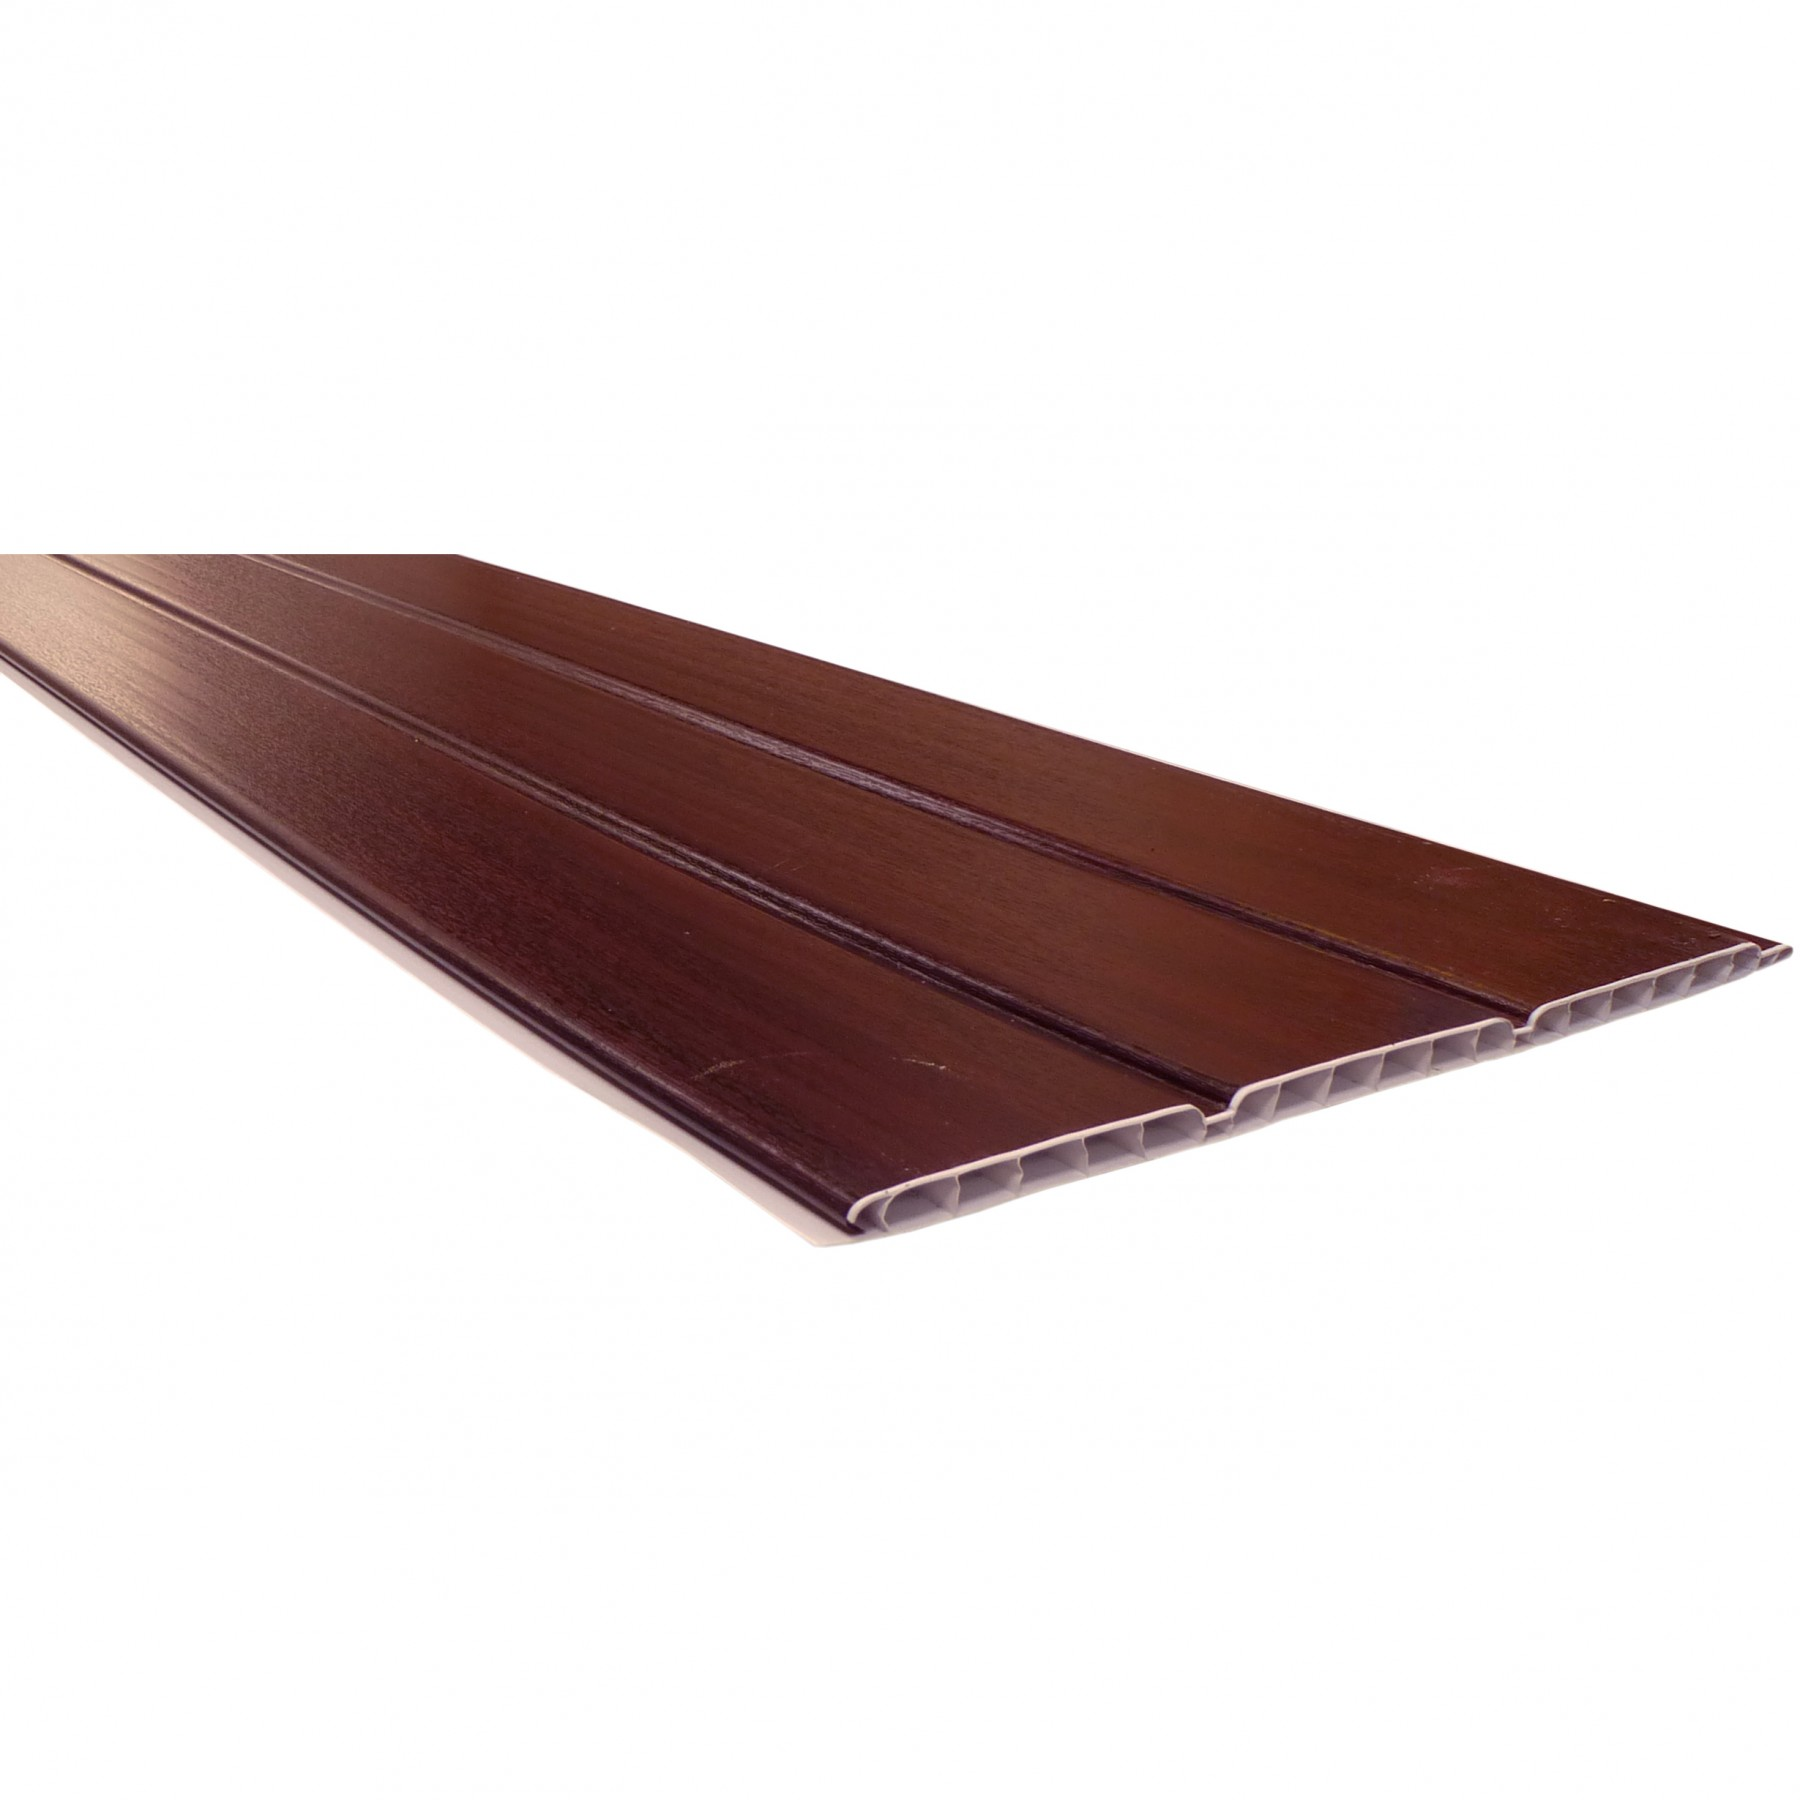 F112wgr Freefoam 10mm Hollow Soffit Board Woodgrain